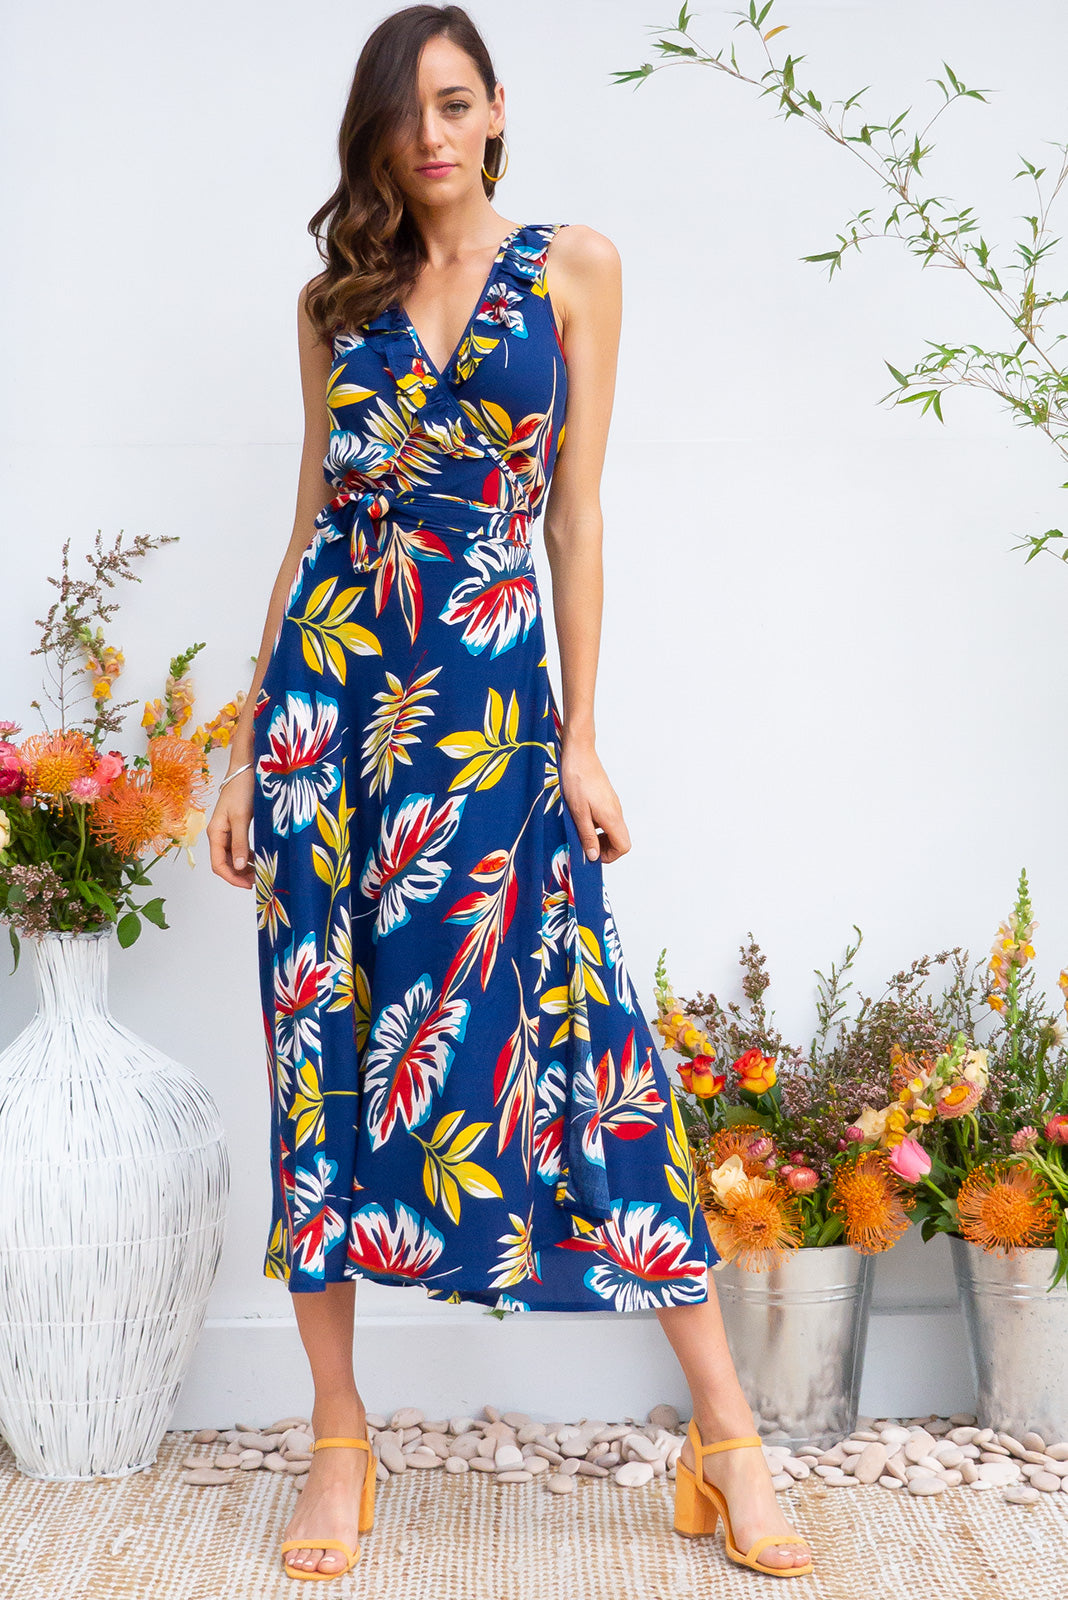 Pablo Inky Leaves Midi Wrap Dress features a flattering wrap around shape, sleeveless bodice with a frill and comes in a bright navy based tropical leaf print on rayon woven fabric